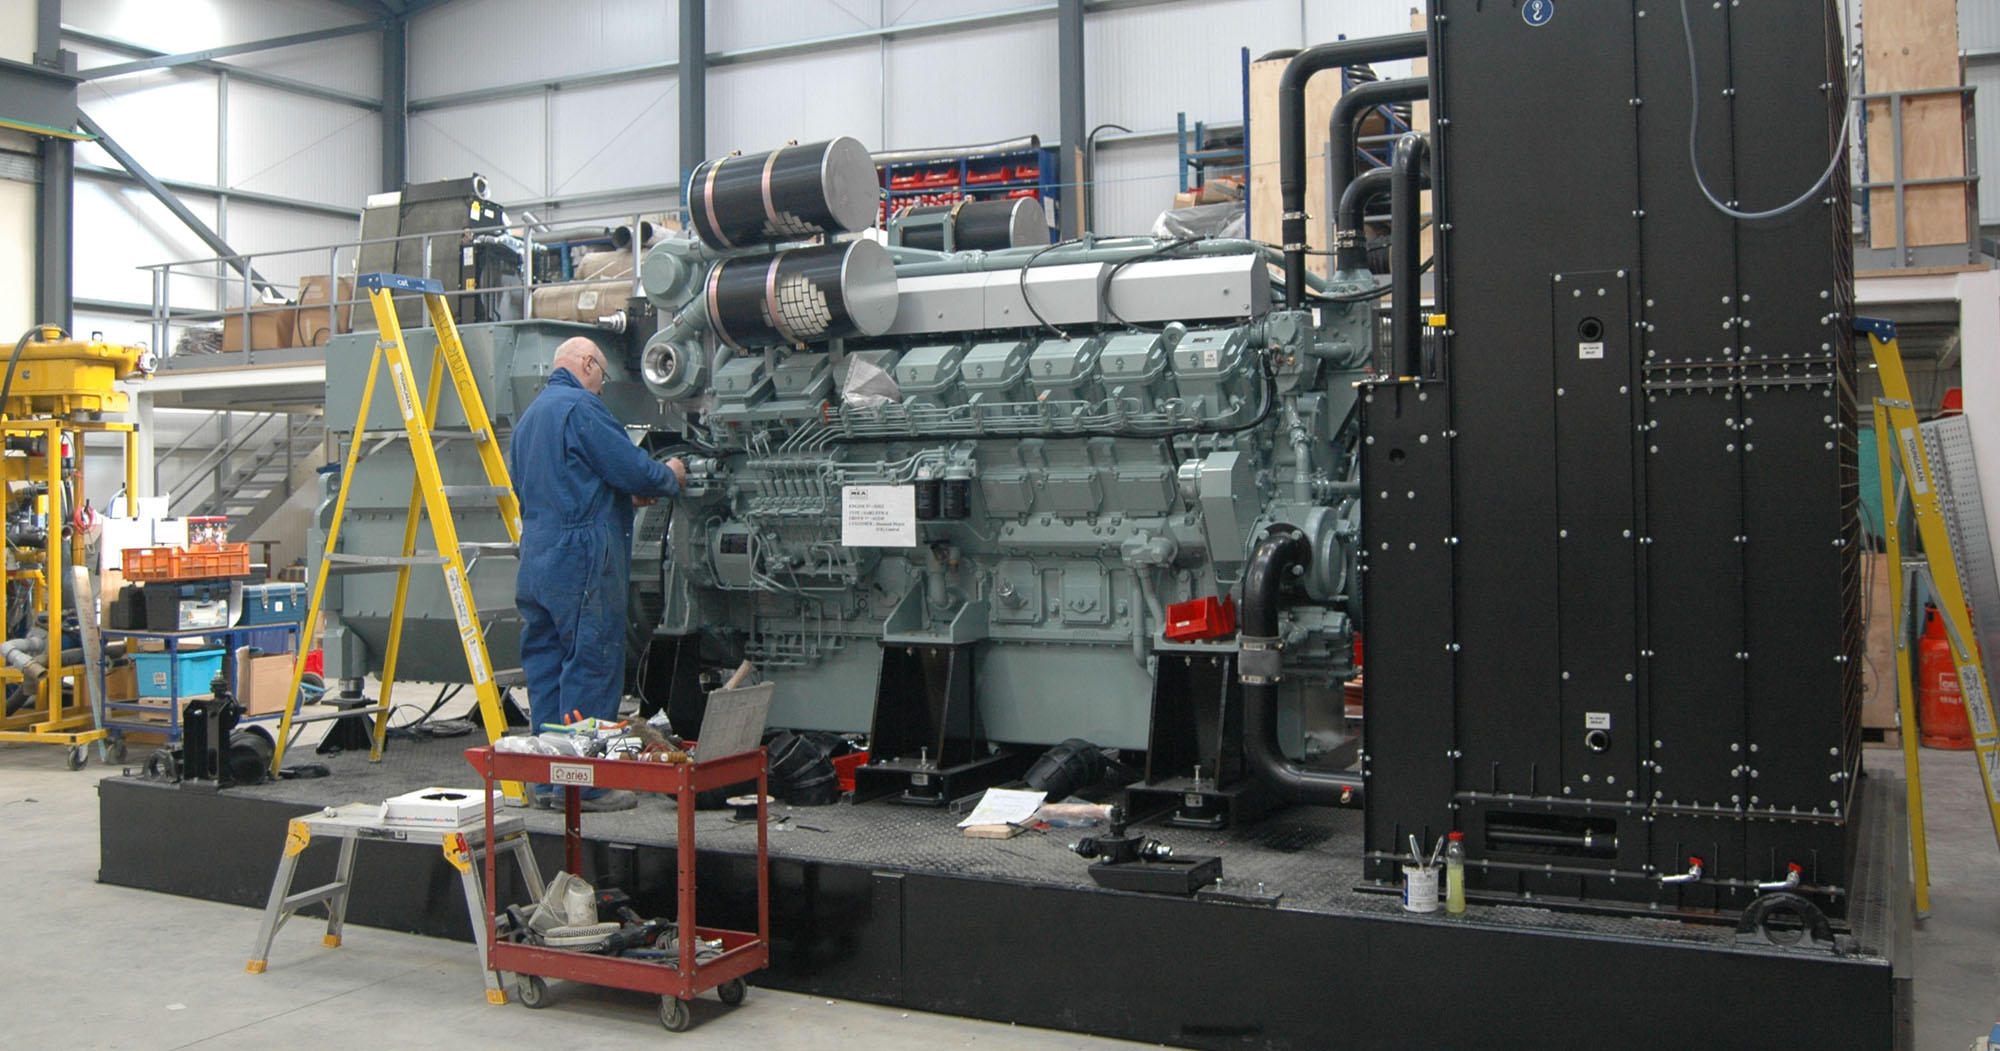 G&M Tex are the internationally recognised leader in the design and manufacture of bespoke generators and control systems for marine vessels such as Royal Navy Destroyers and superyachts, offshore environments including oil and gas platforms, and critical backup power systems for airports, data centres and hospitals.